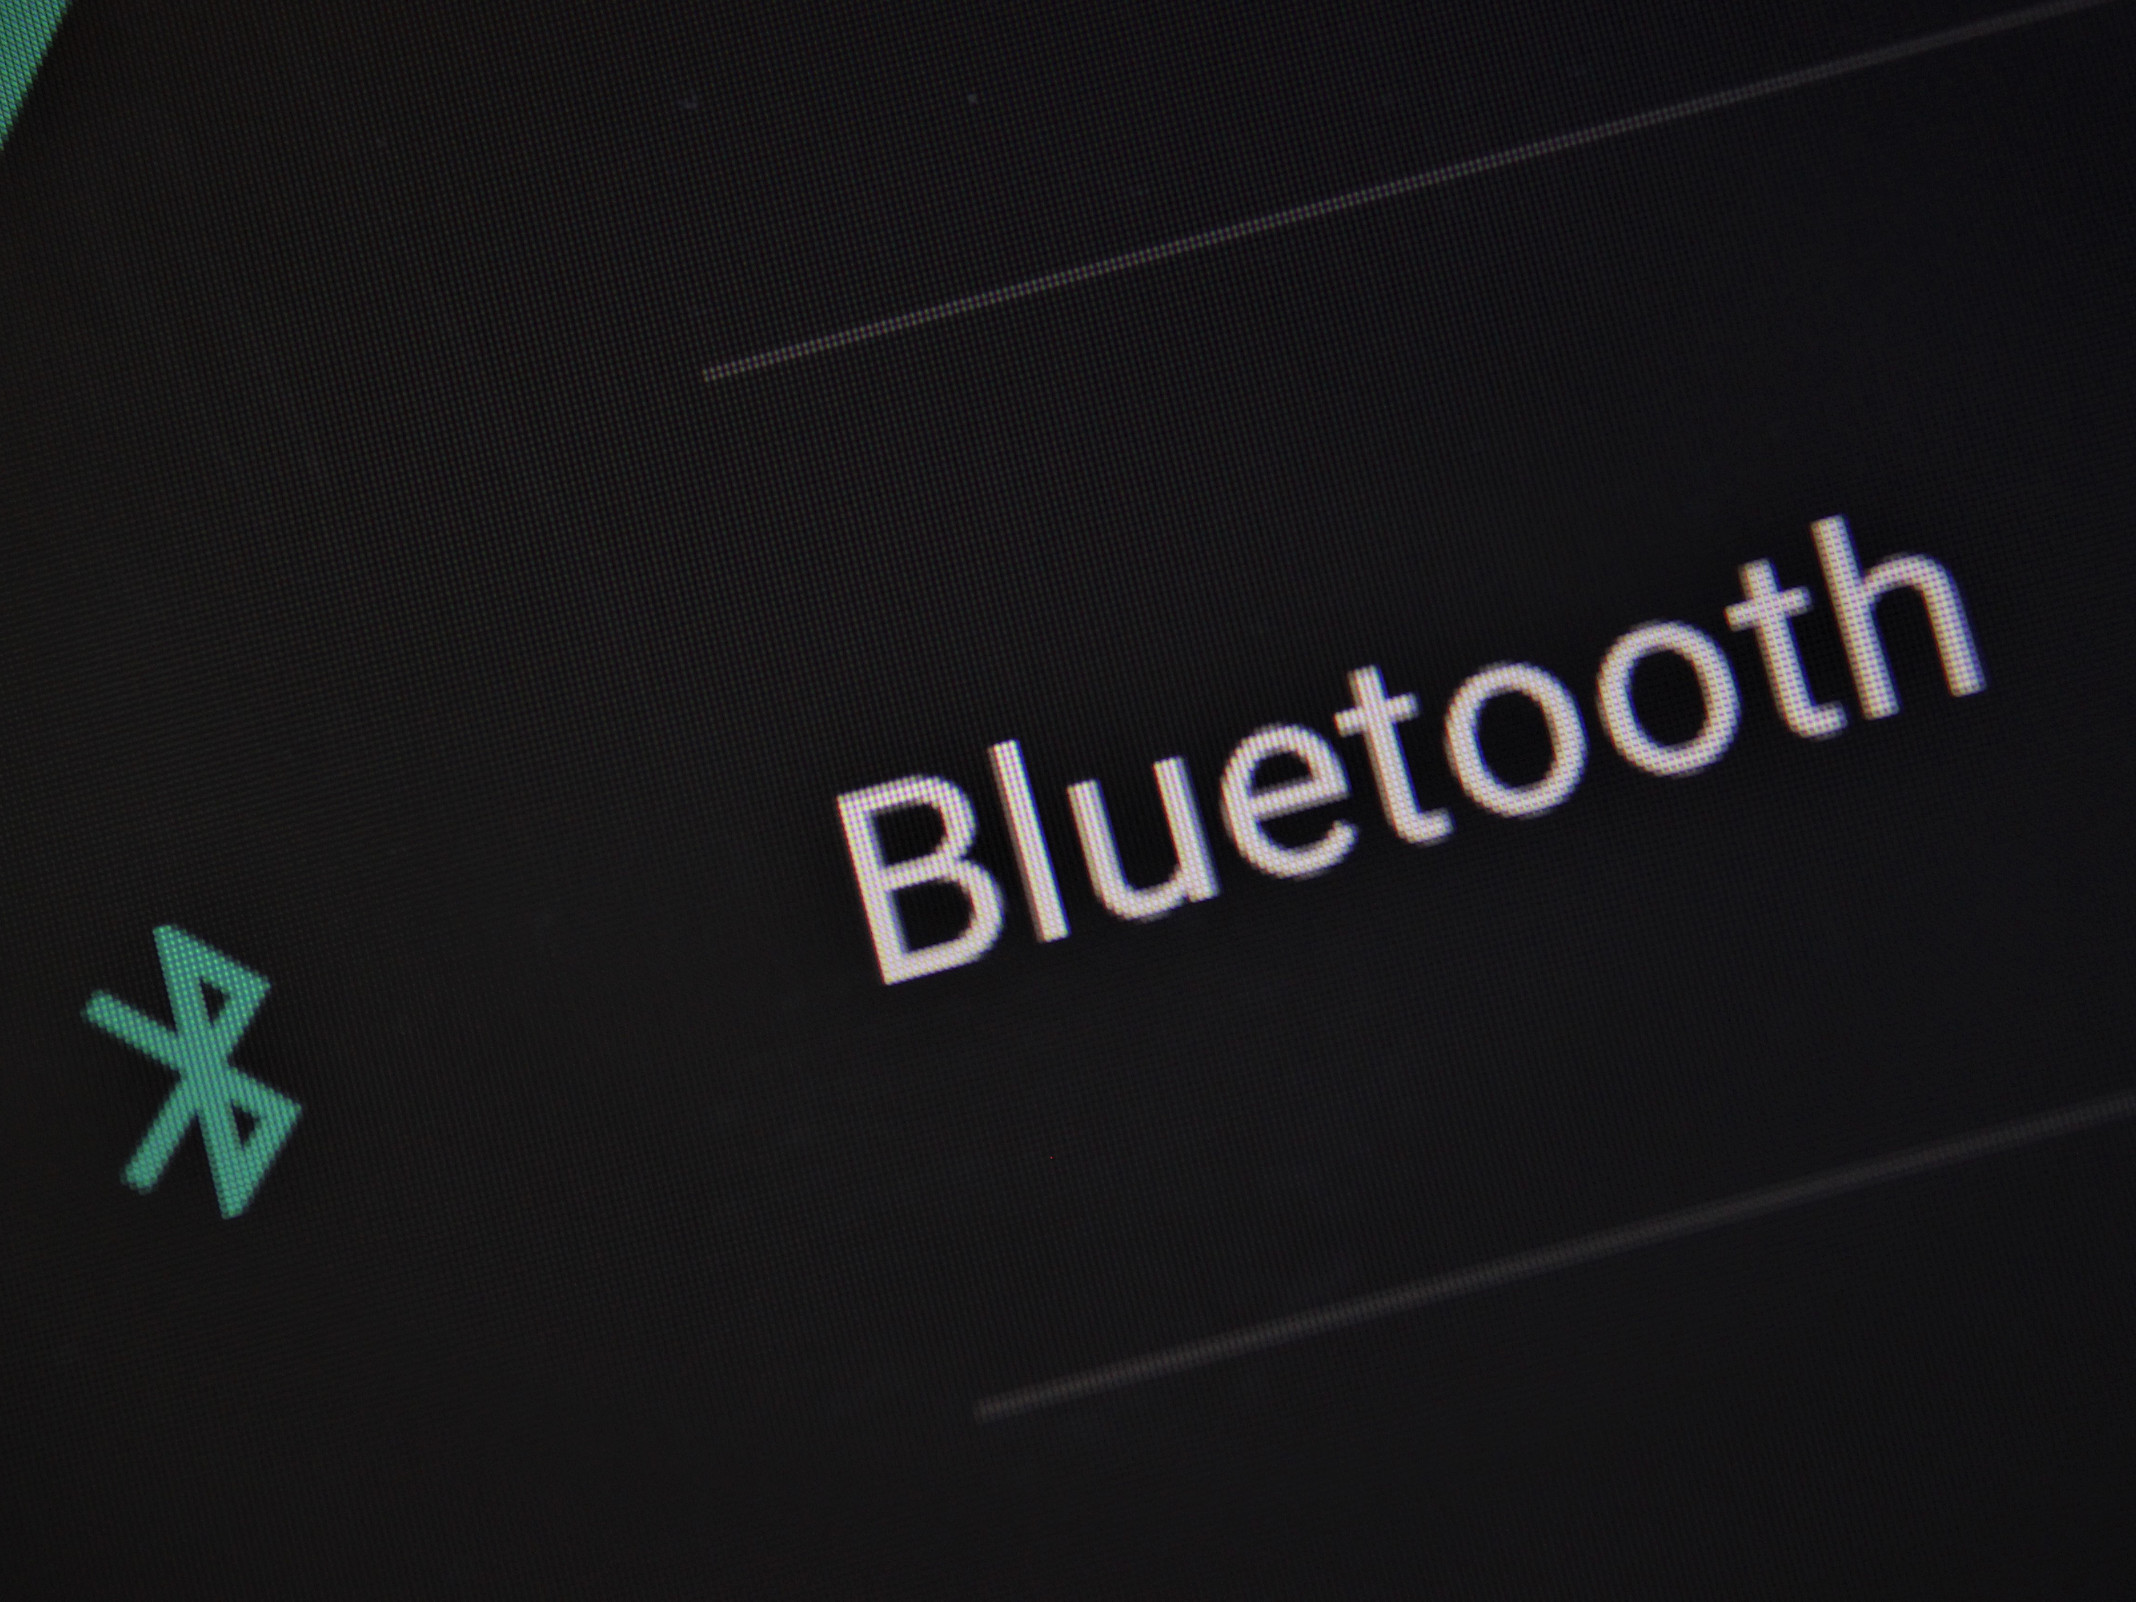 Bluetooth-Icon auf dem Handy-Display